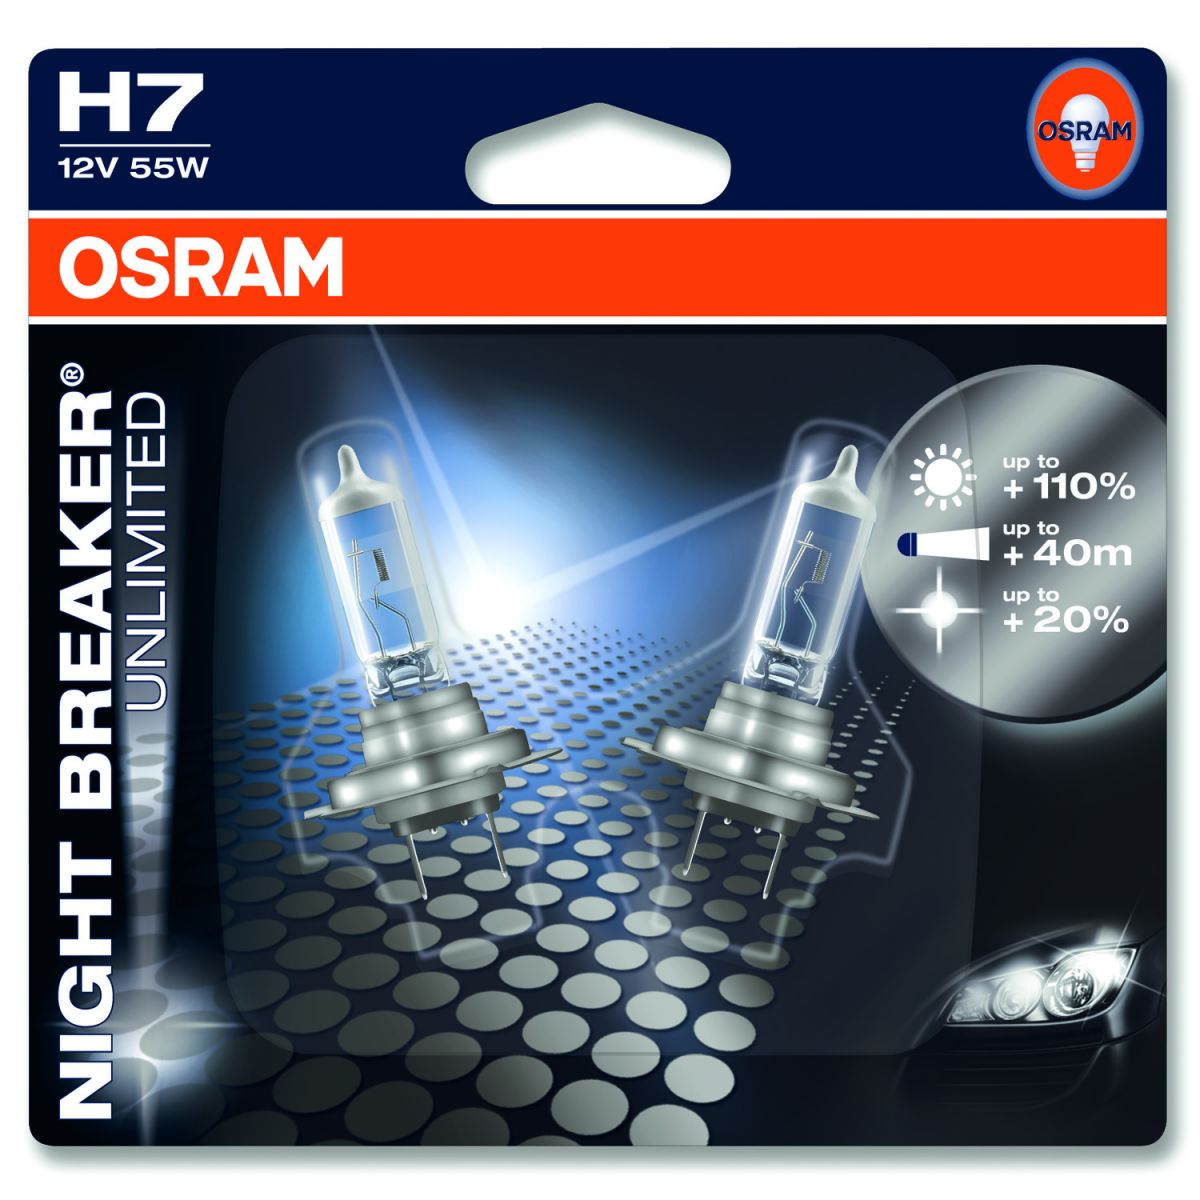 Комплект ламп OSRAM H7 NIGHT BREAKER UNLIMITED 110% (55W 12V PX26D)